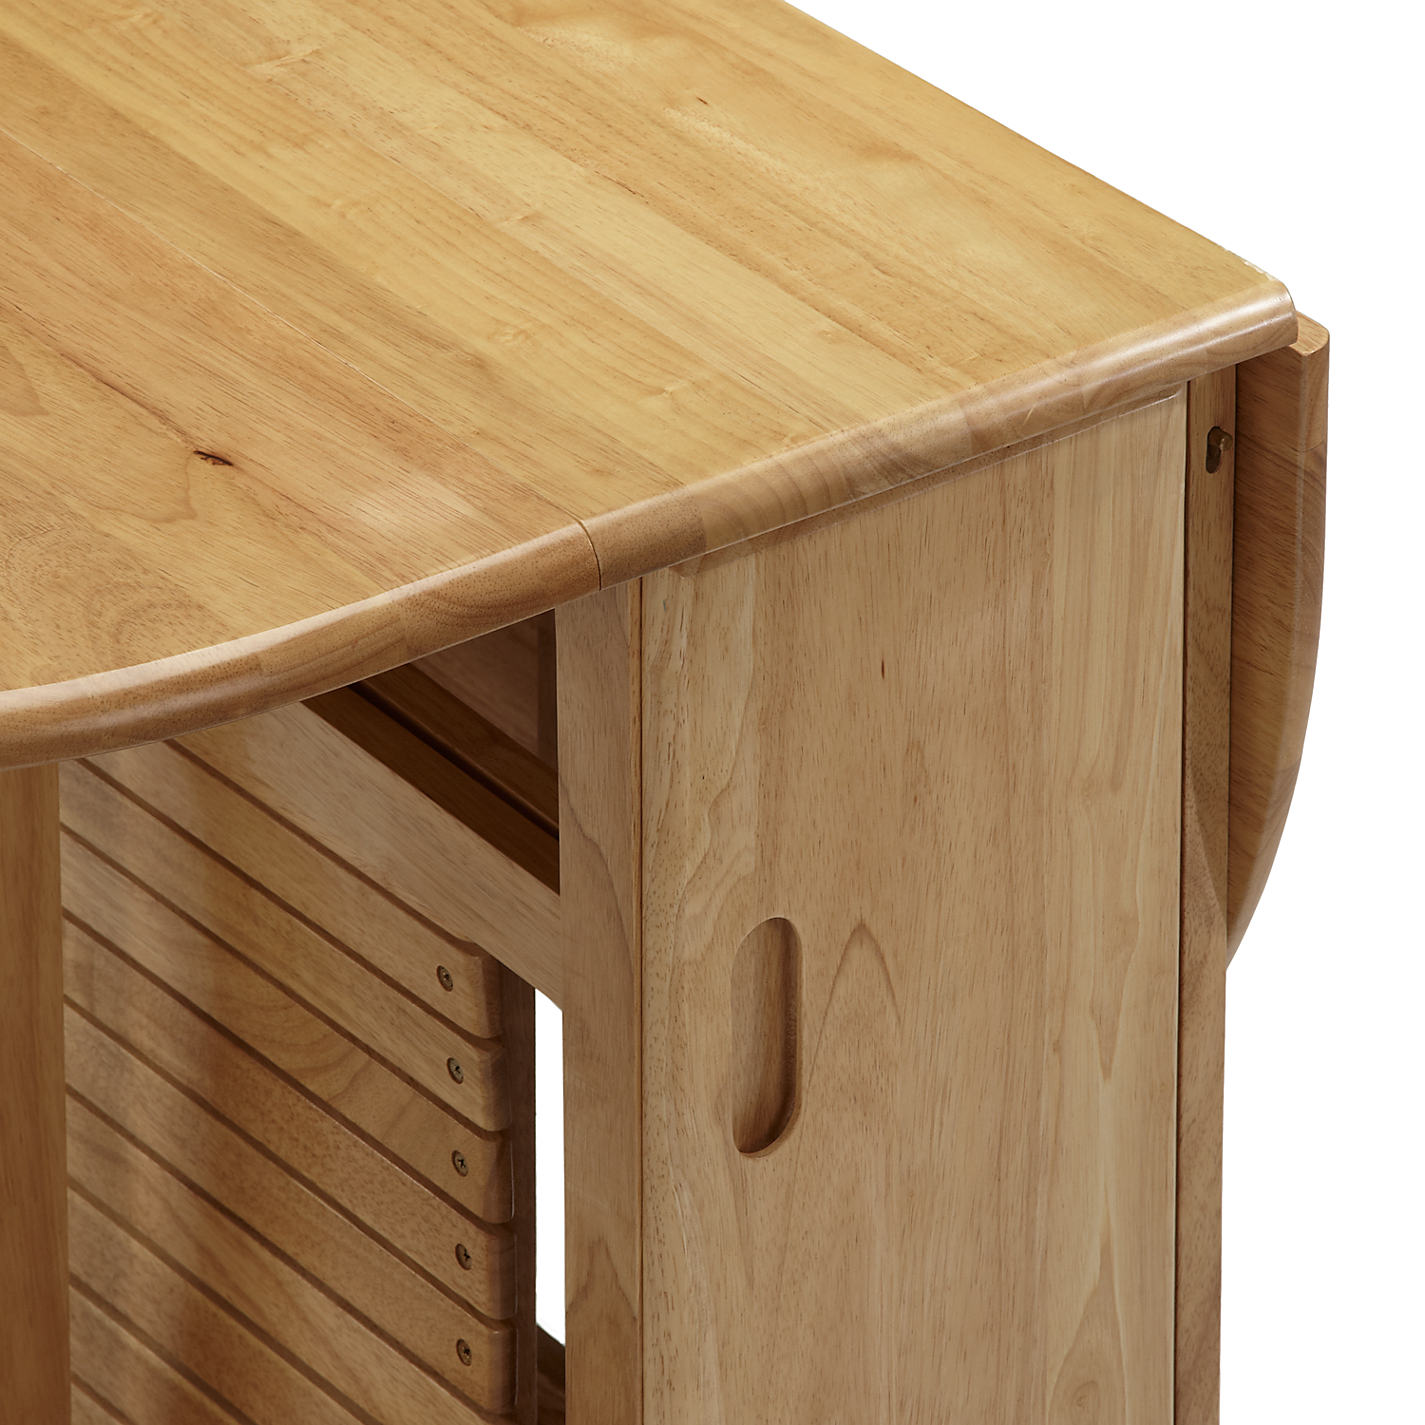 Butterfly folding table ikea - Ikea uk folding table ...